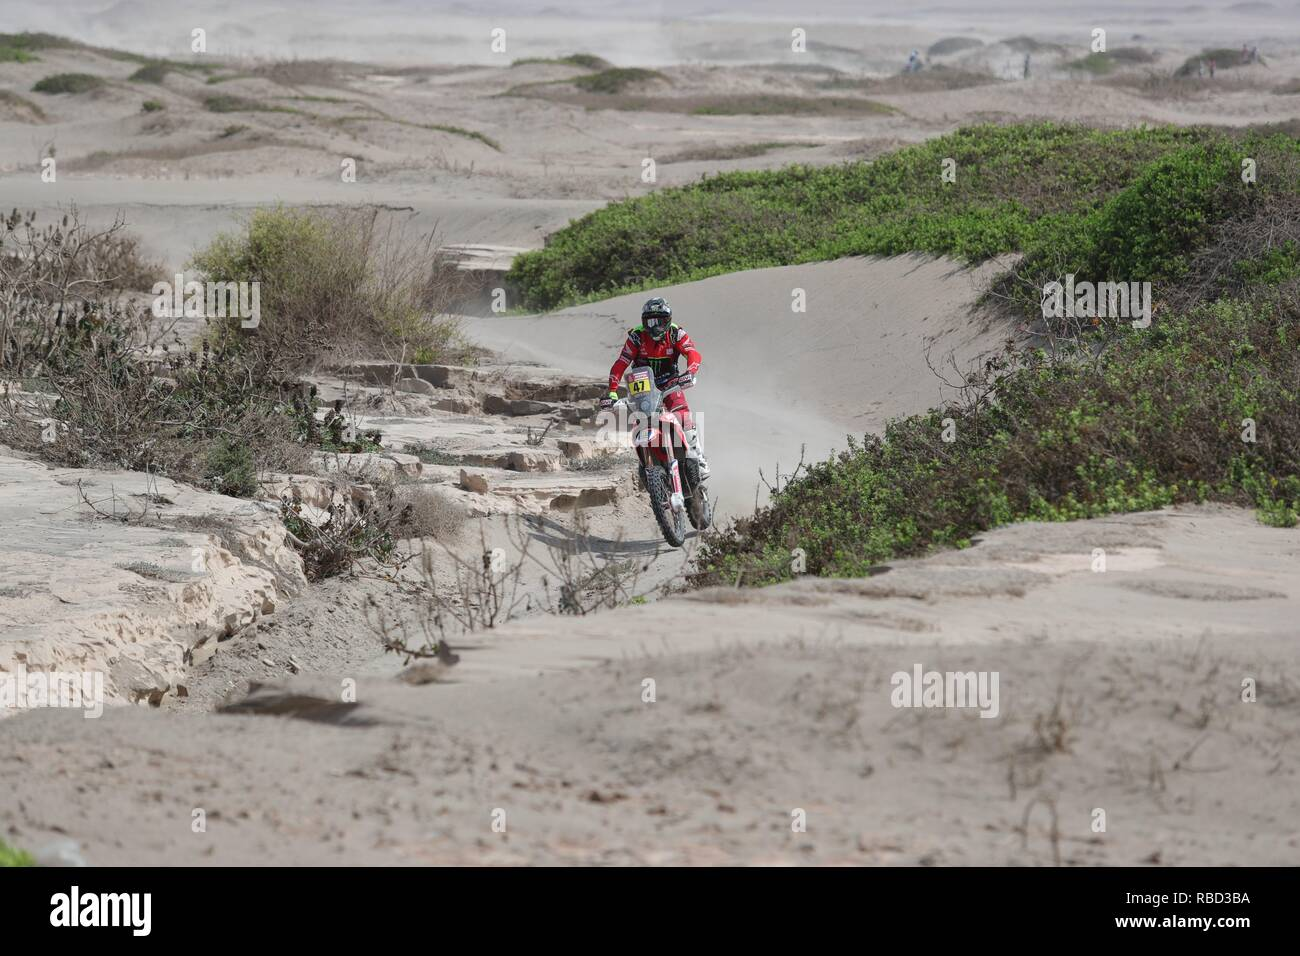 San Juan De Marcona, Peru. 08th Jan, 2019. Argentinean Kevin Benavides drives his Husqvarna during the third stage of the Rally Dakar 2019, from San Juan de Marcona to Arequipa, in Peru, 09 January 2019. Credit: Ernesto Arias/EFE/Alamy Live News - Stock Image